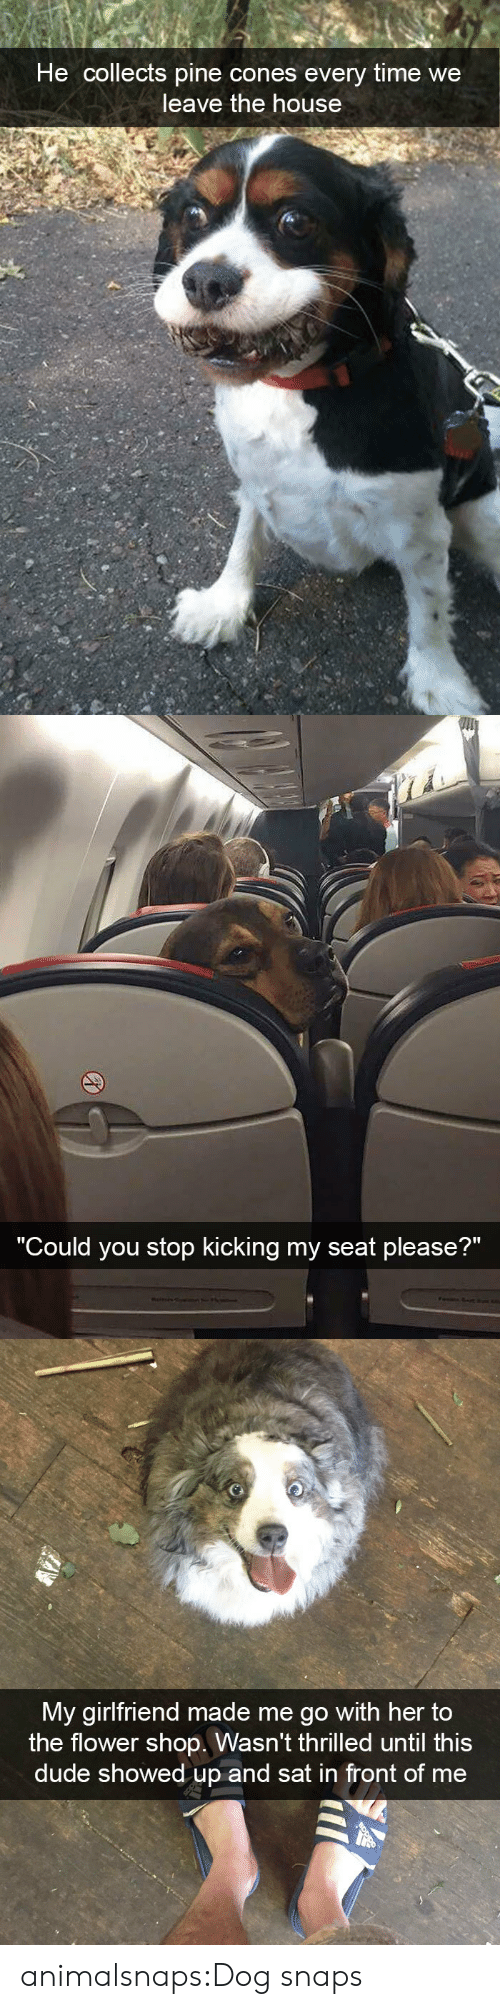 """Dude, Target, and Tumblr: He collects pine cones every time we  leave the house   """"C  ould you stop kicking my seat please?""""   My girlfriend made me go with her to  the flower shop. Wasn't thrilled until this  dude showed up and sat in front of me animalsnaps:Dog snaps"""